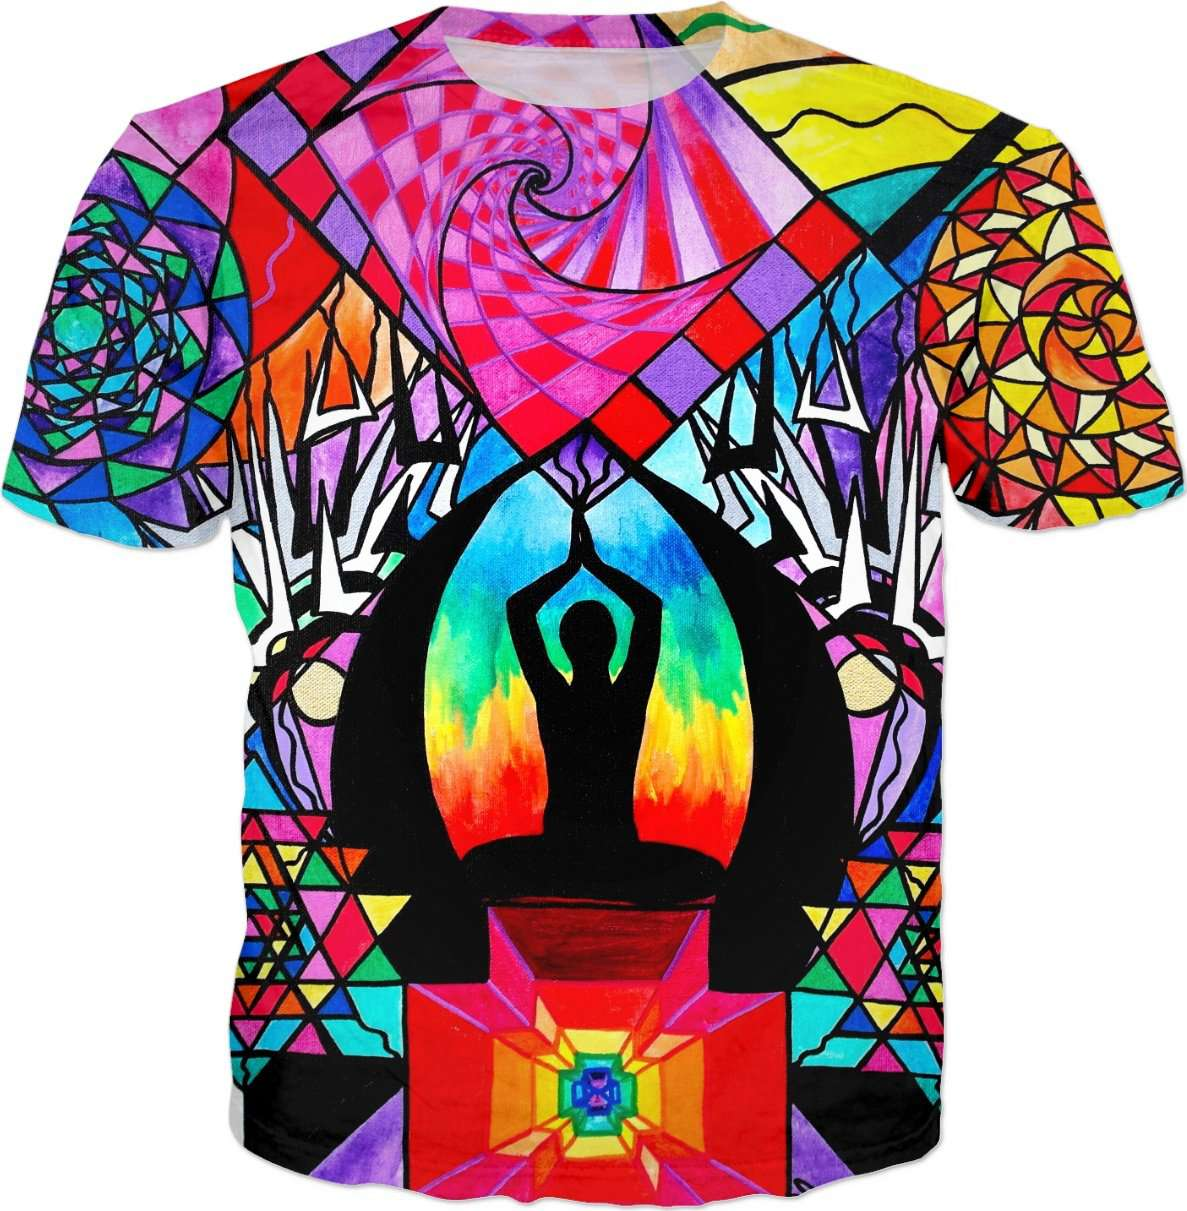 Meditation Aid - Mens T-Shirt